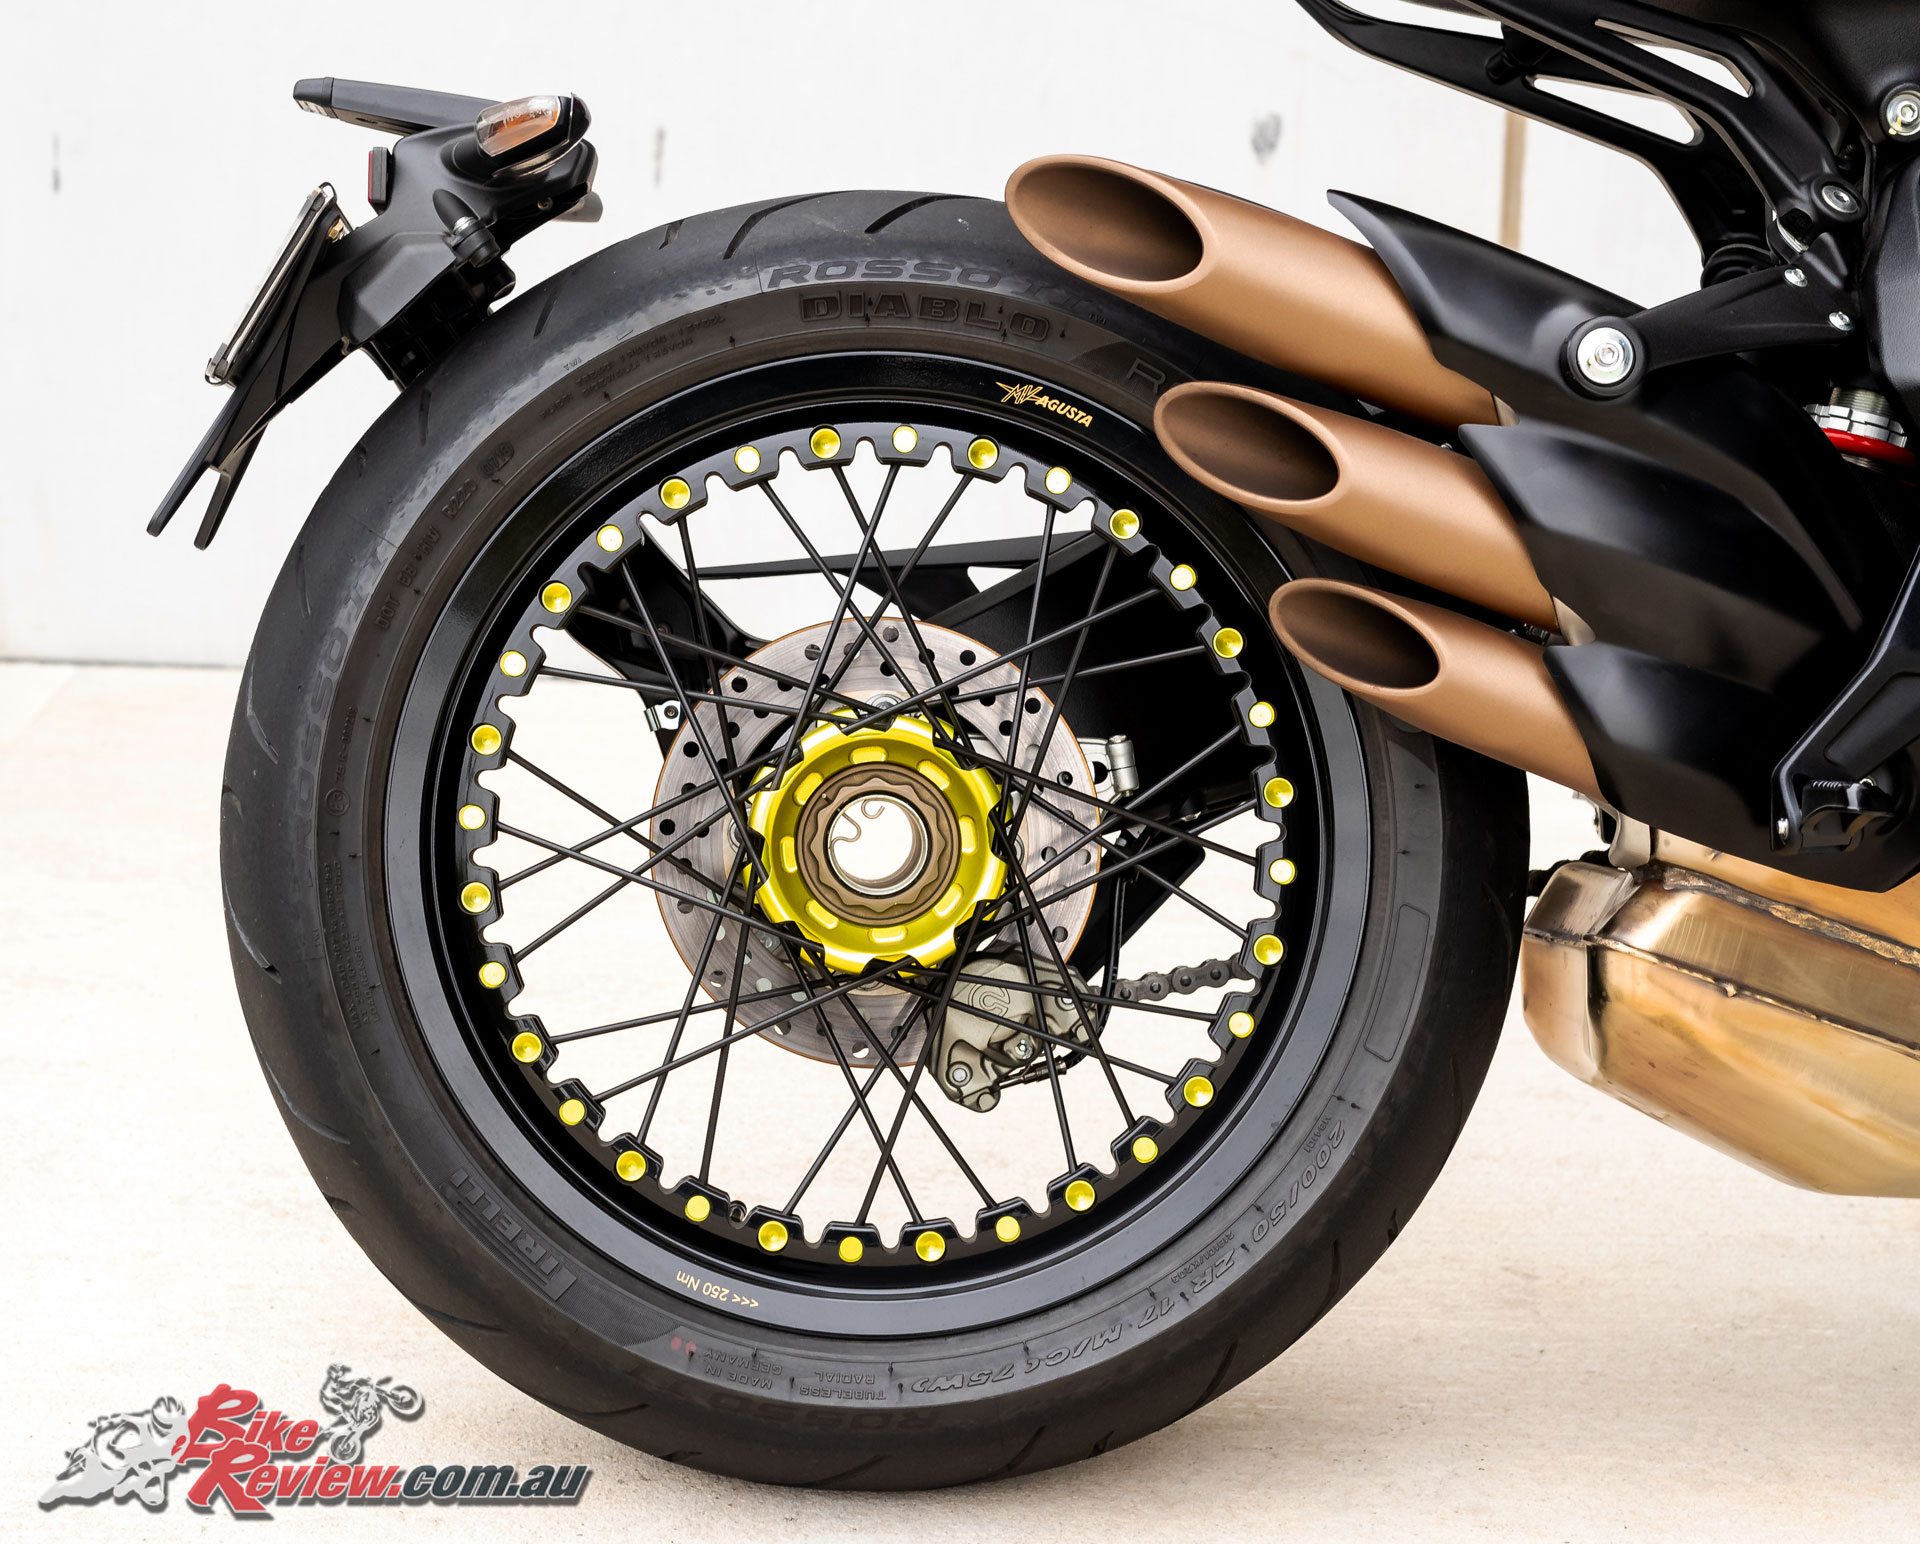 A noticeable difference between the Brutale and Dragster models is that 200-section spoked rear wheel